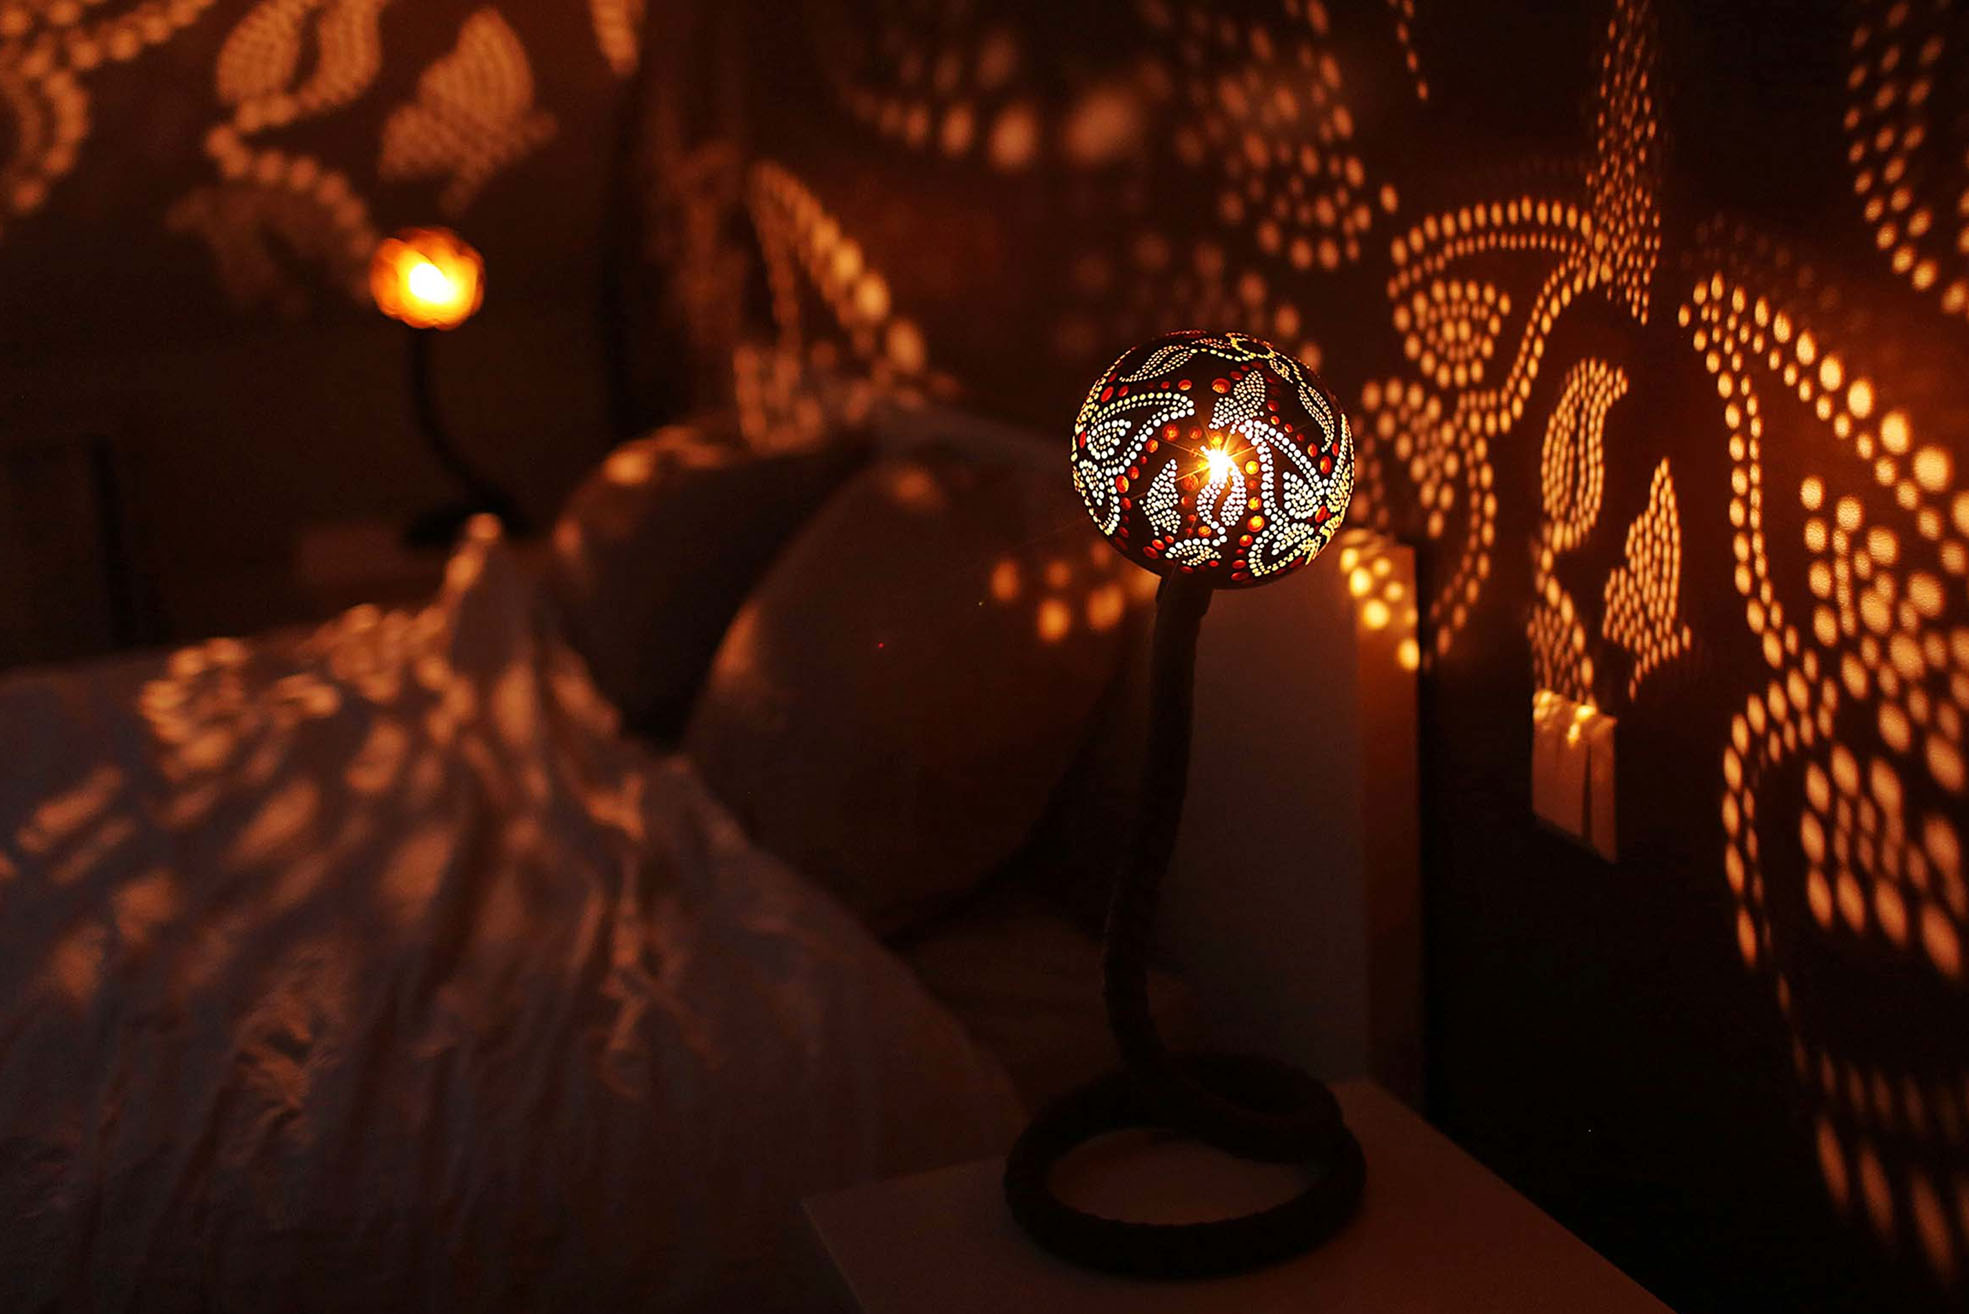 Handmade magical lights by Nymphs Workshop